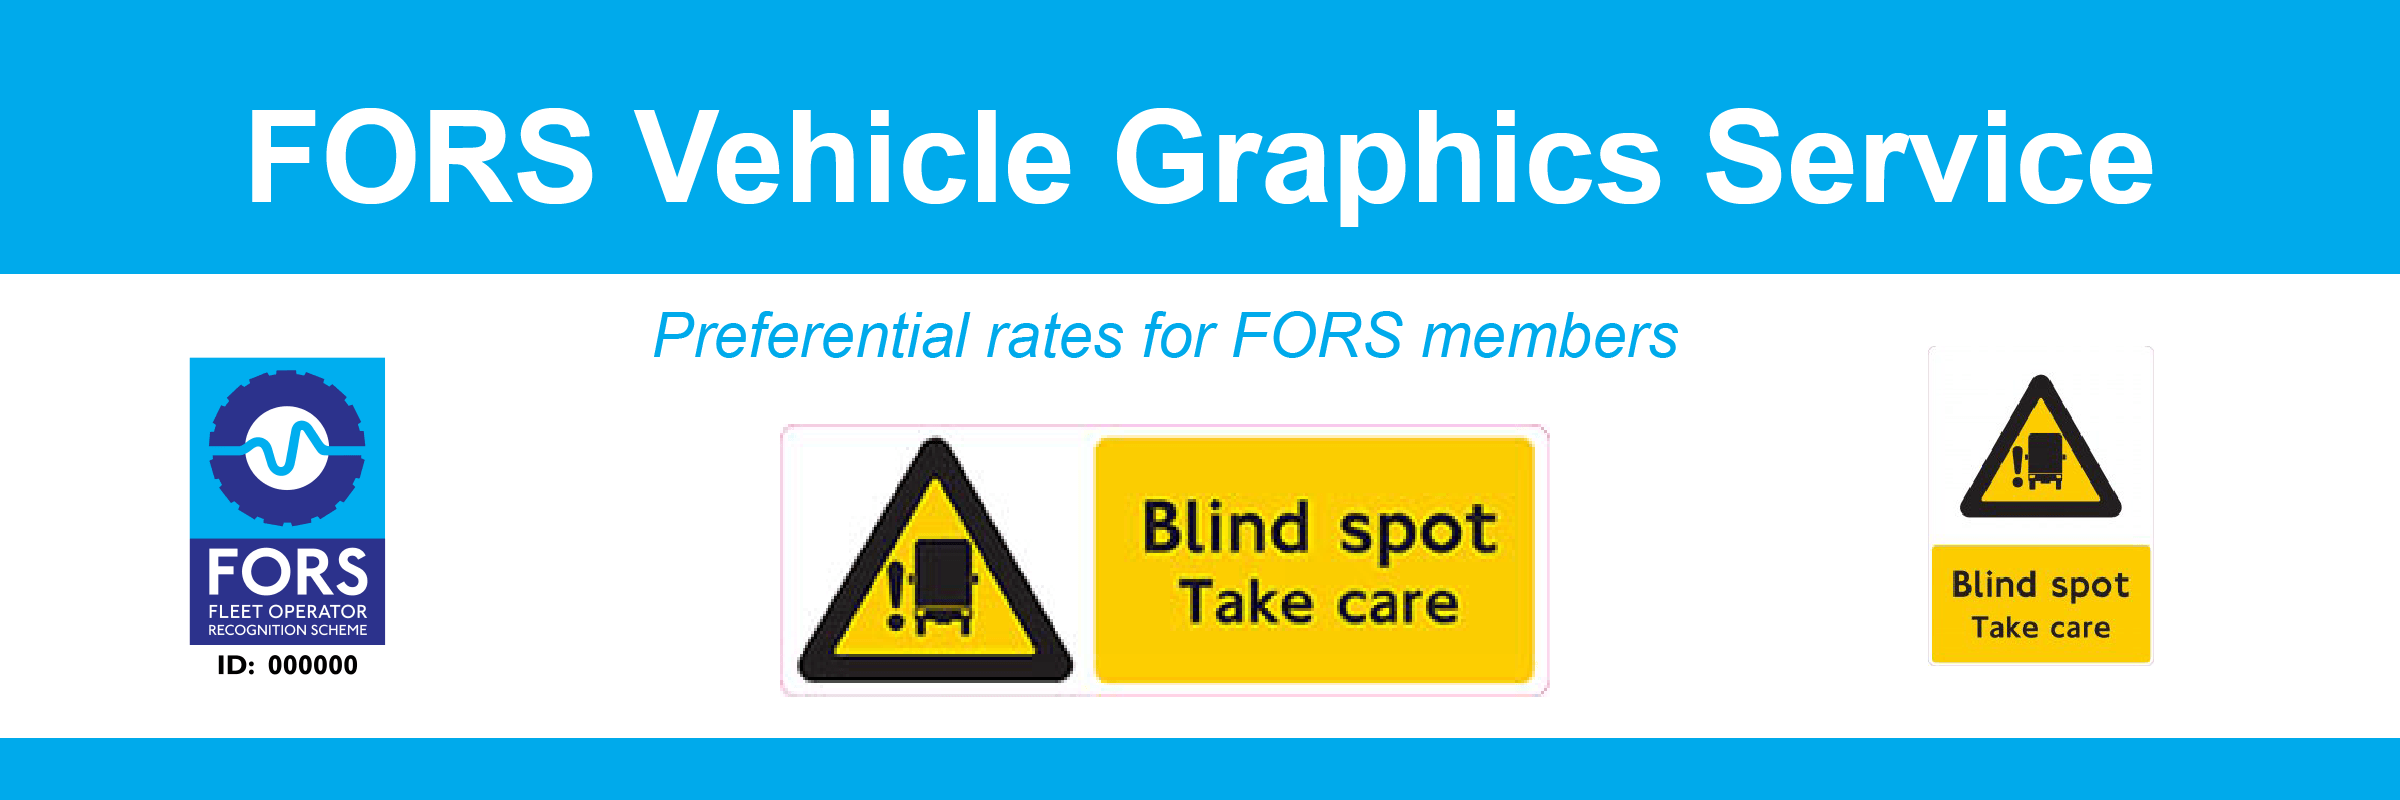 FORS Homepage - FORS - Fleet Operator Recognition Scheme